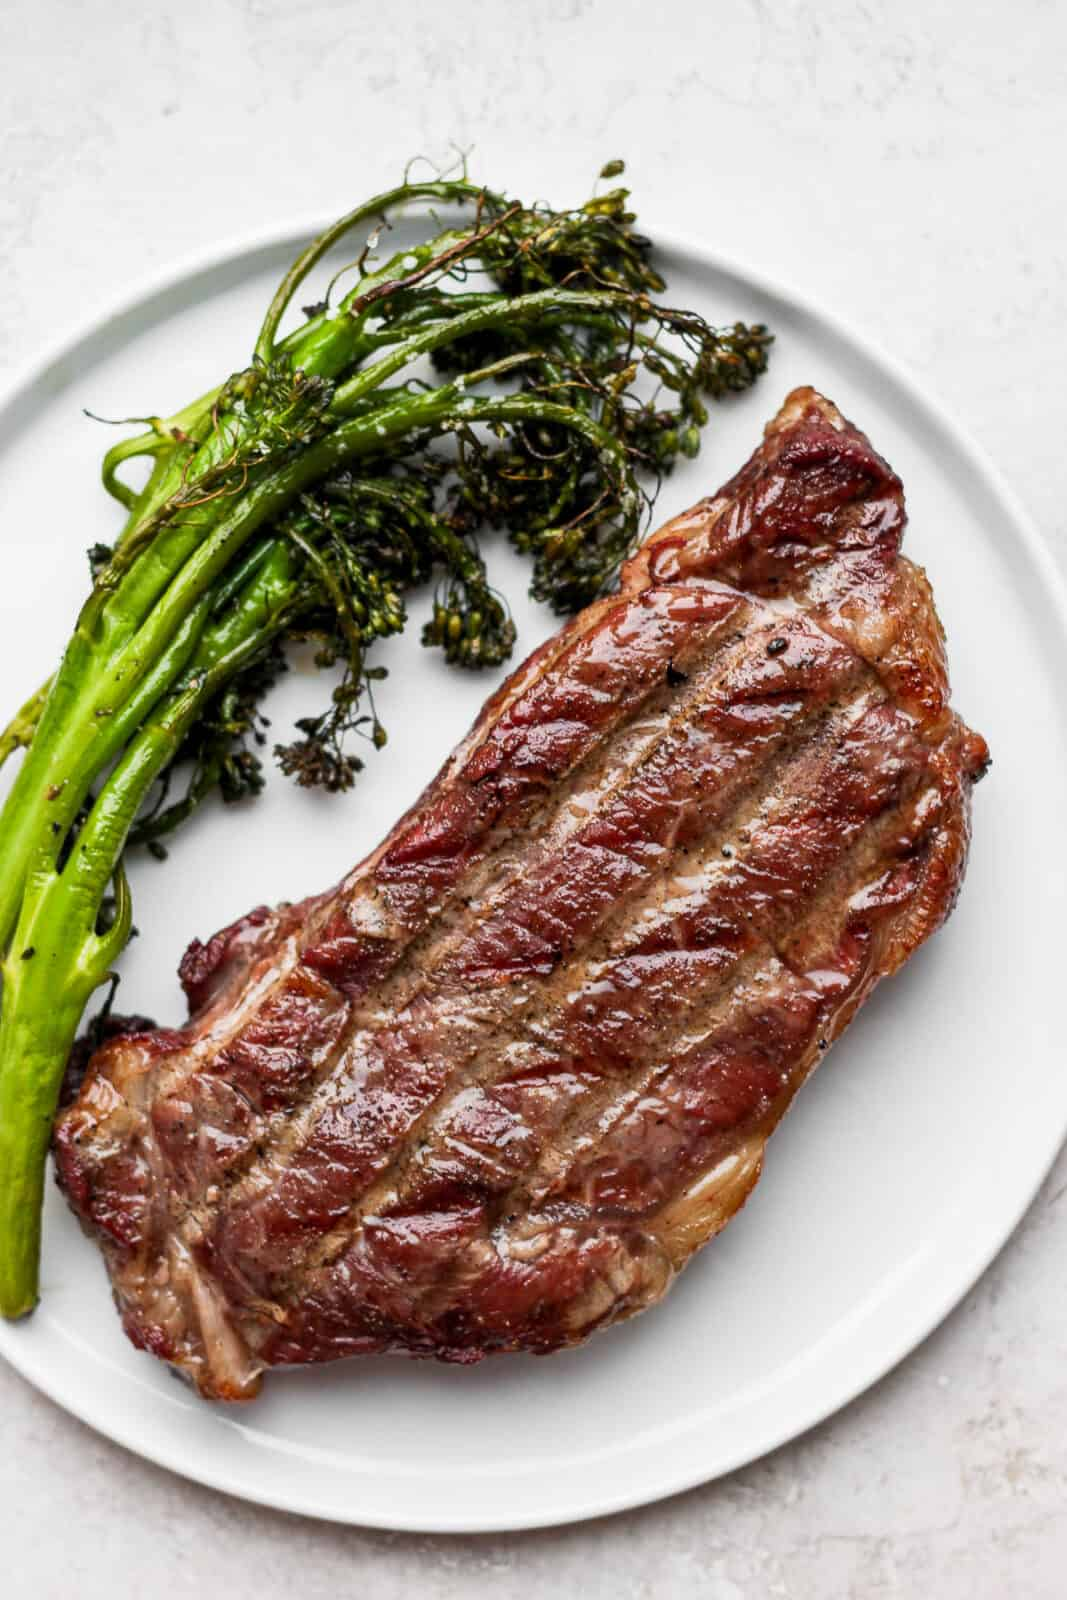 A plate with a reverse seared steak covered in melted butter and parsley with some grilled broccolini next to it.